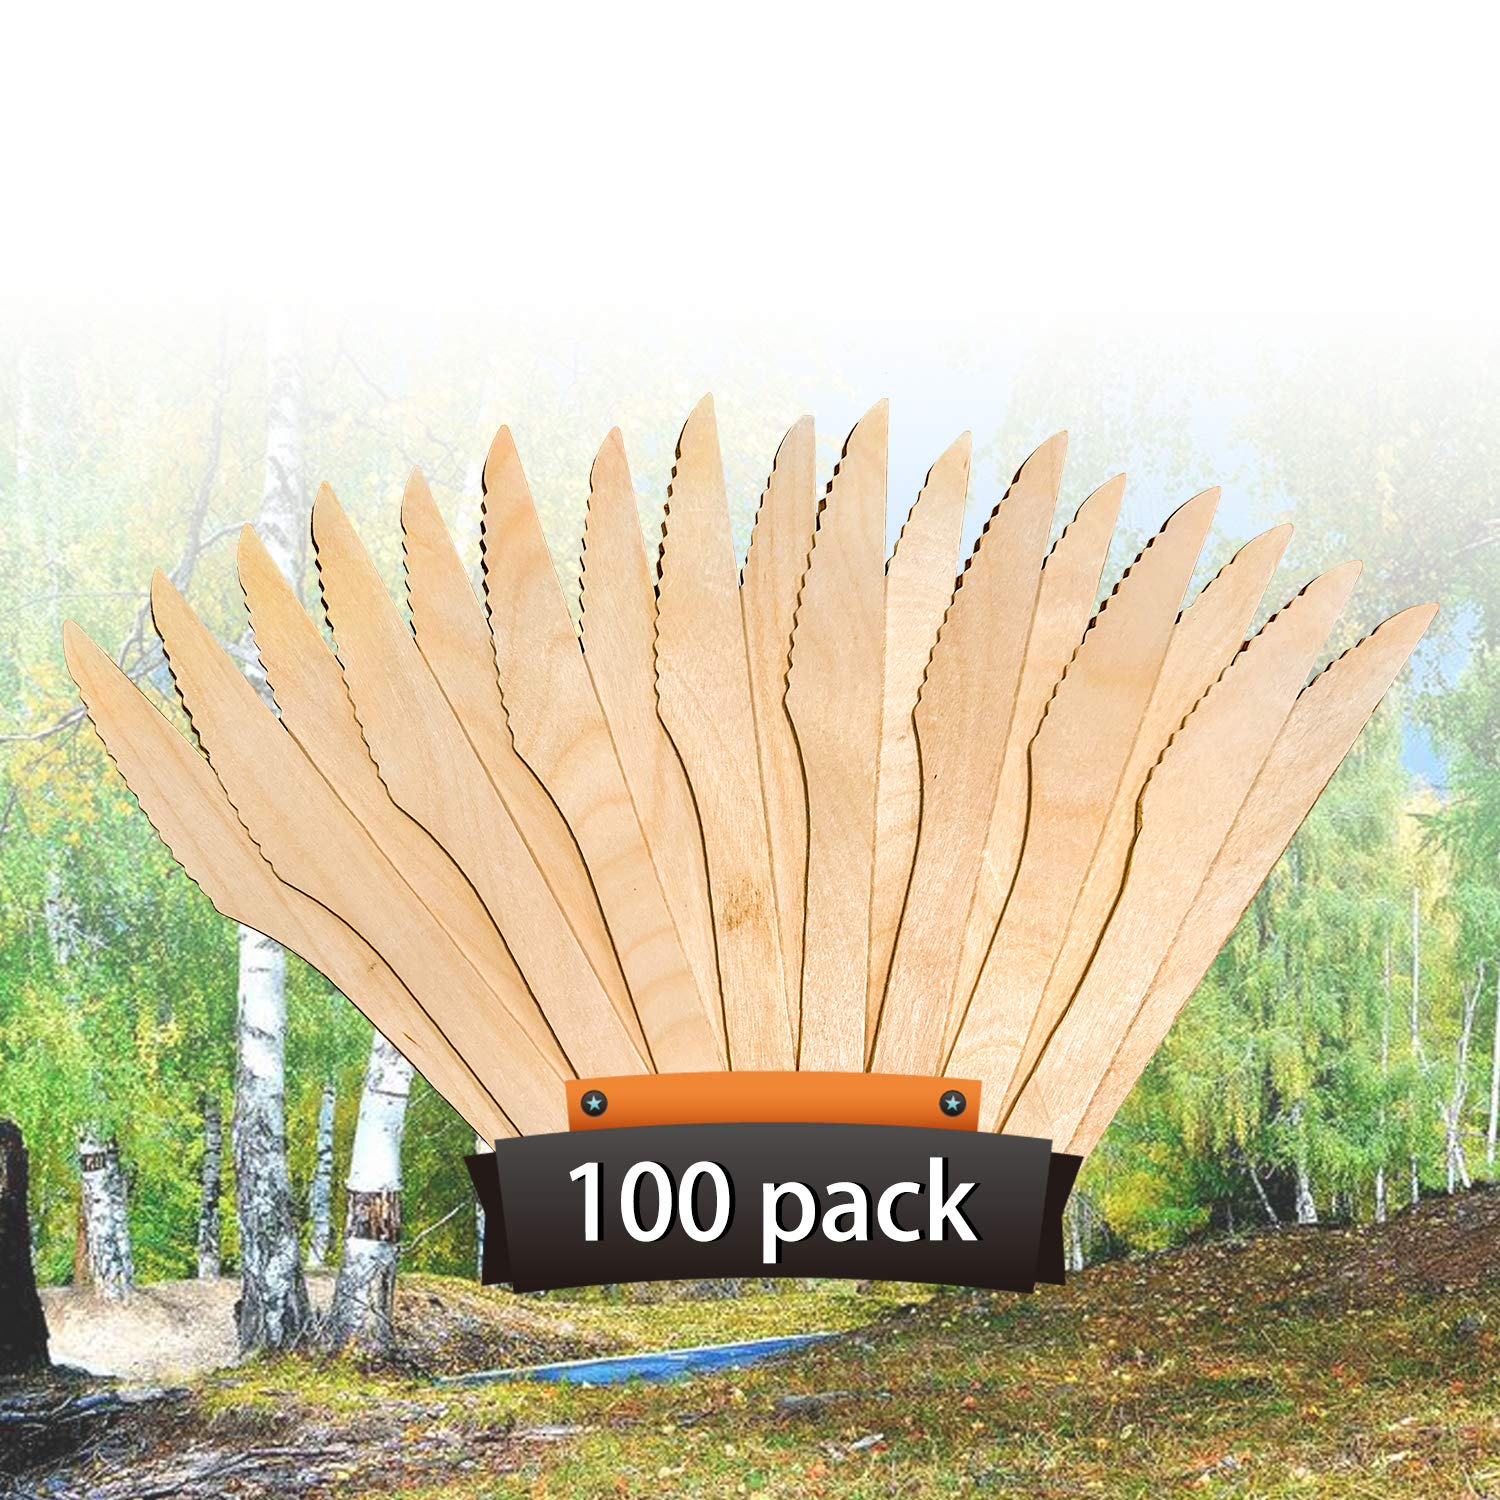 """Wooden Knives Heavyweight Compostable Disposable Wooden Cutlery - KITMA 6.5"""" Natural Birch Wood Environmental Protection Tableware - 100% All Natural, Eco Friendly, Biodegradable (Pack of 100)"""